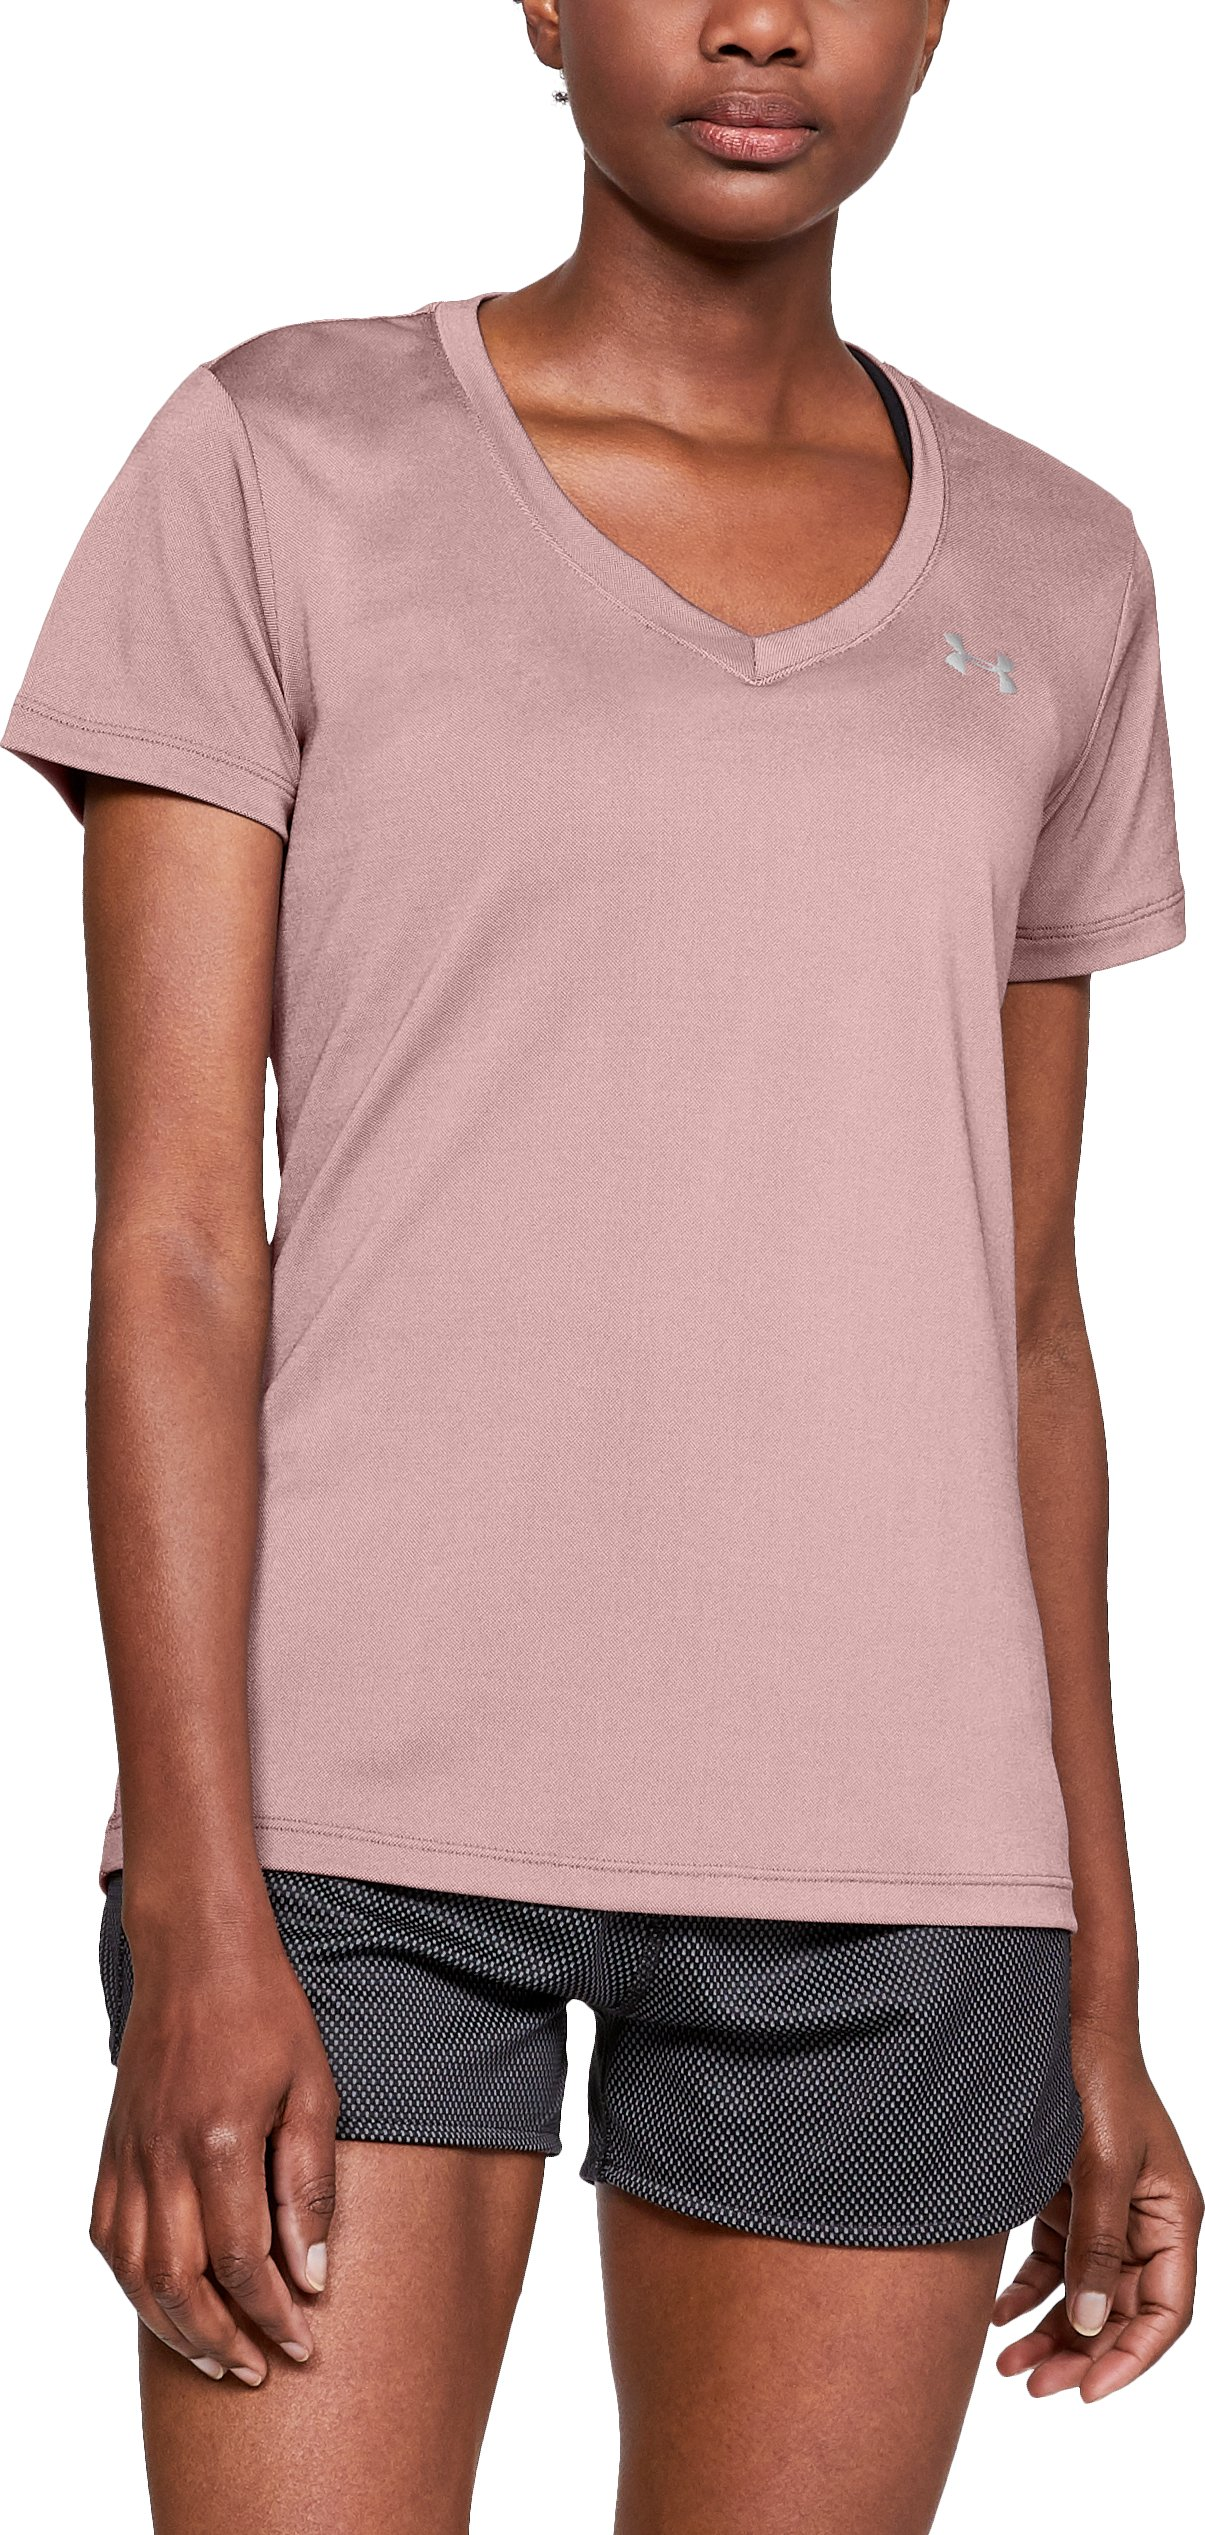 Women's UA Tech™ Color Shift V-neck Short Sleeve, Flushed Pink, zoomed